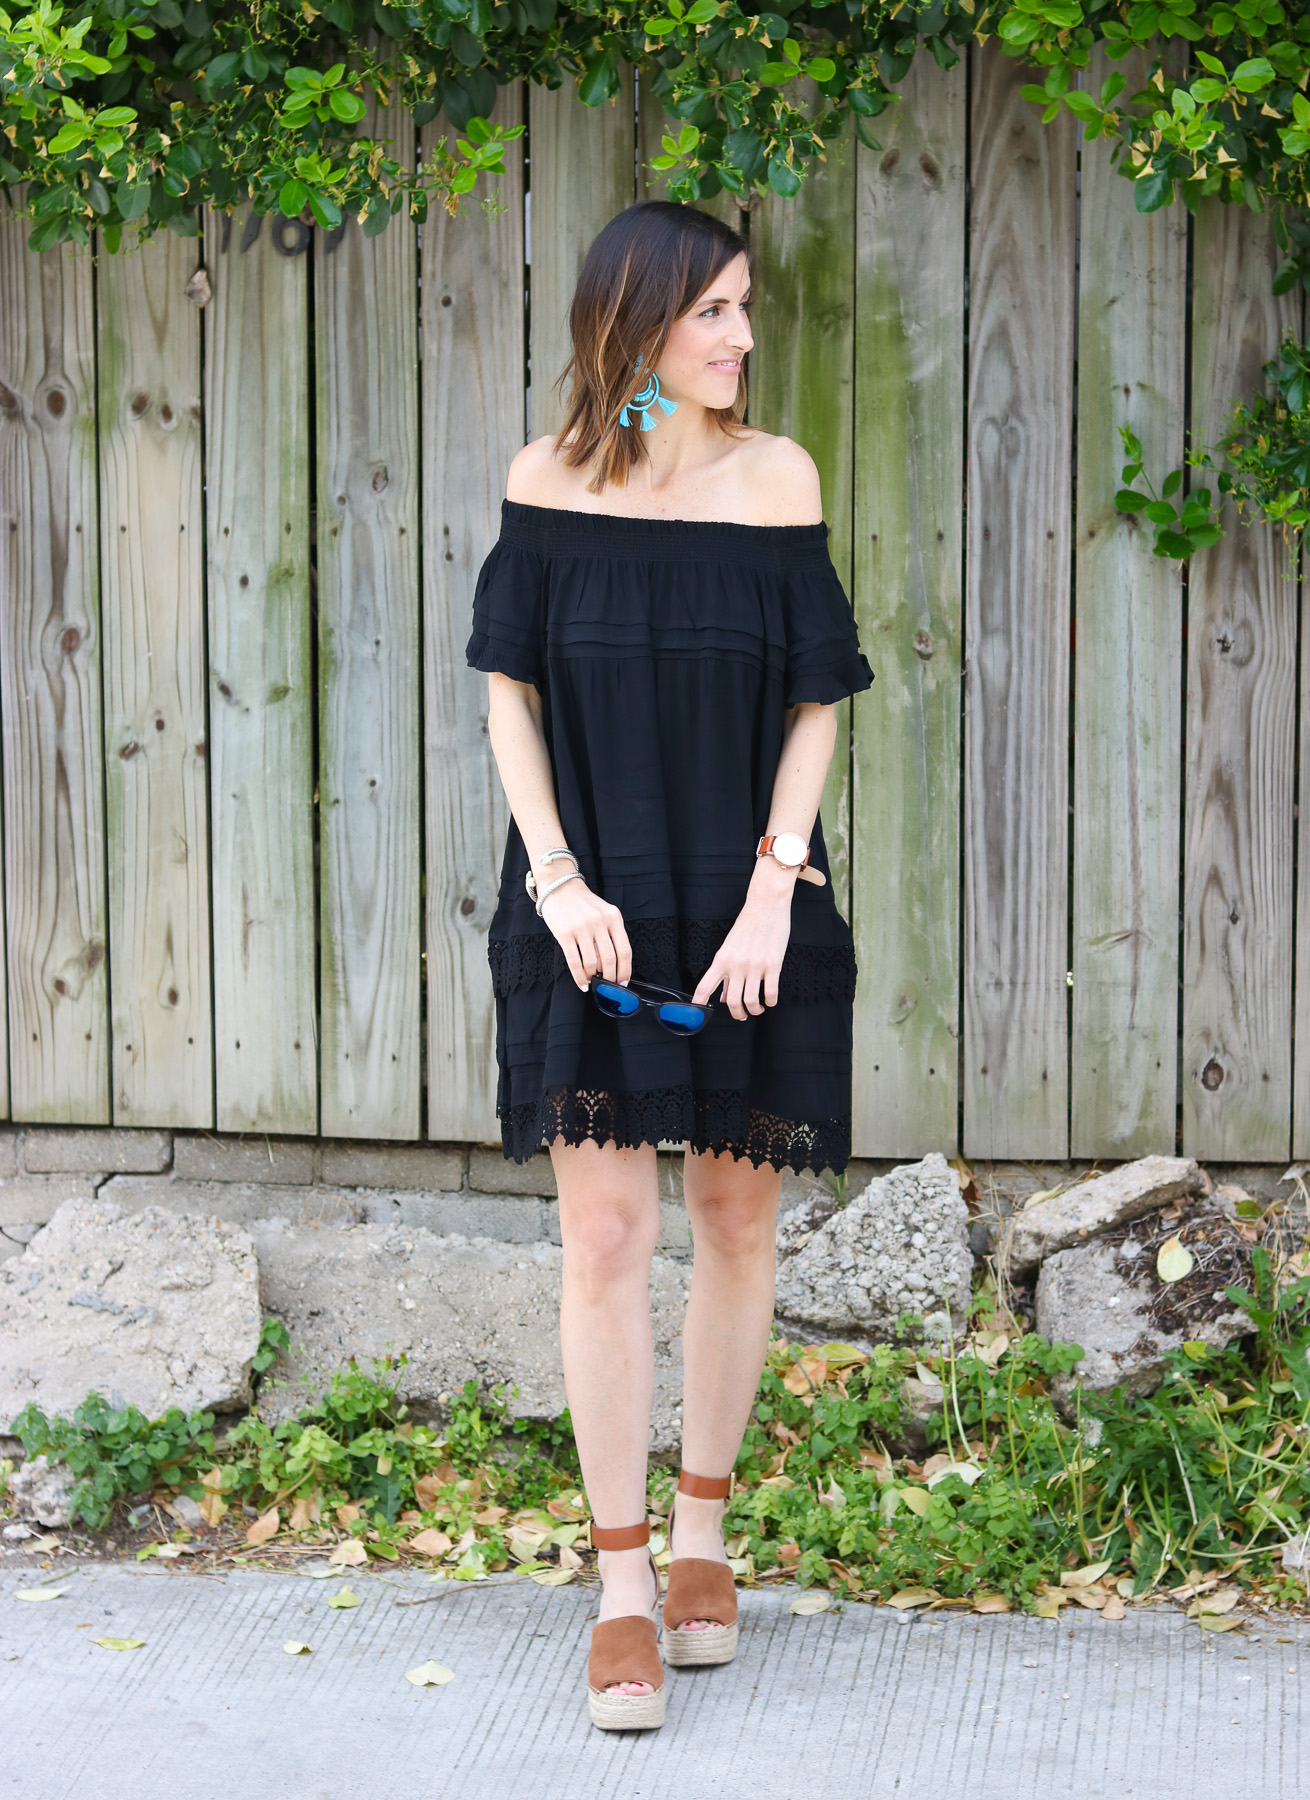 Black Off the Shoulder Dress @cobaltchronicle